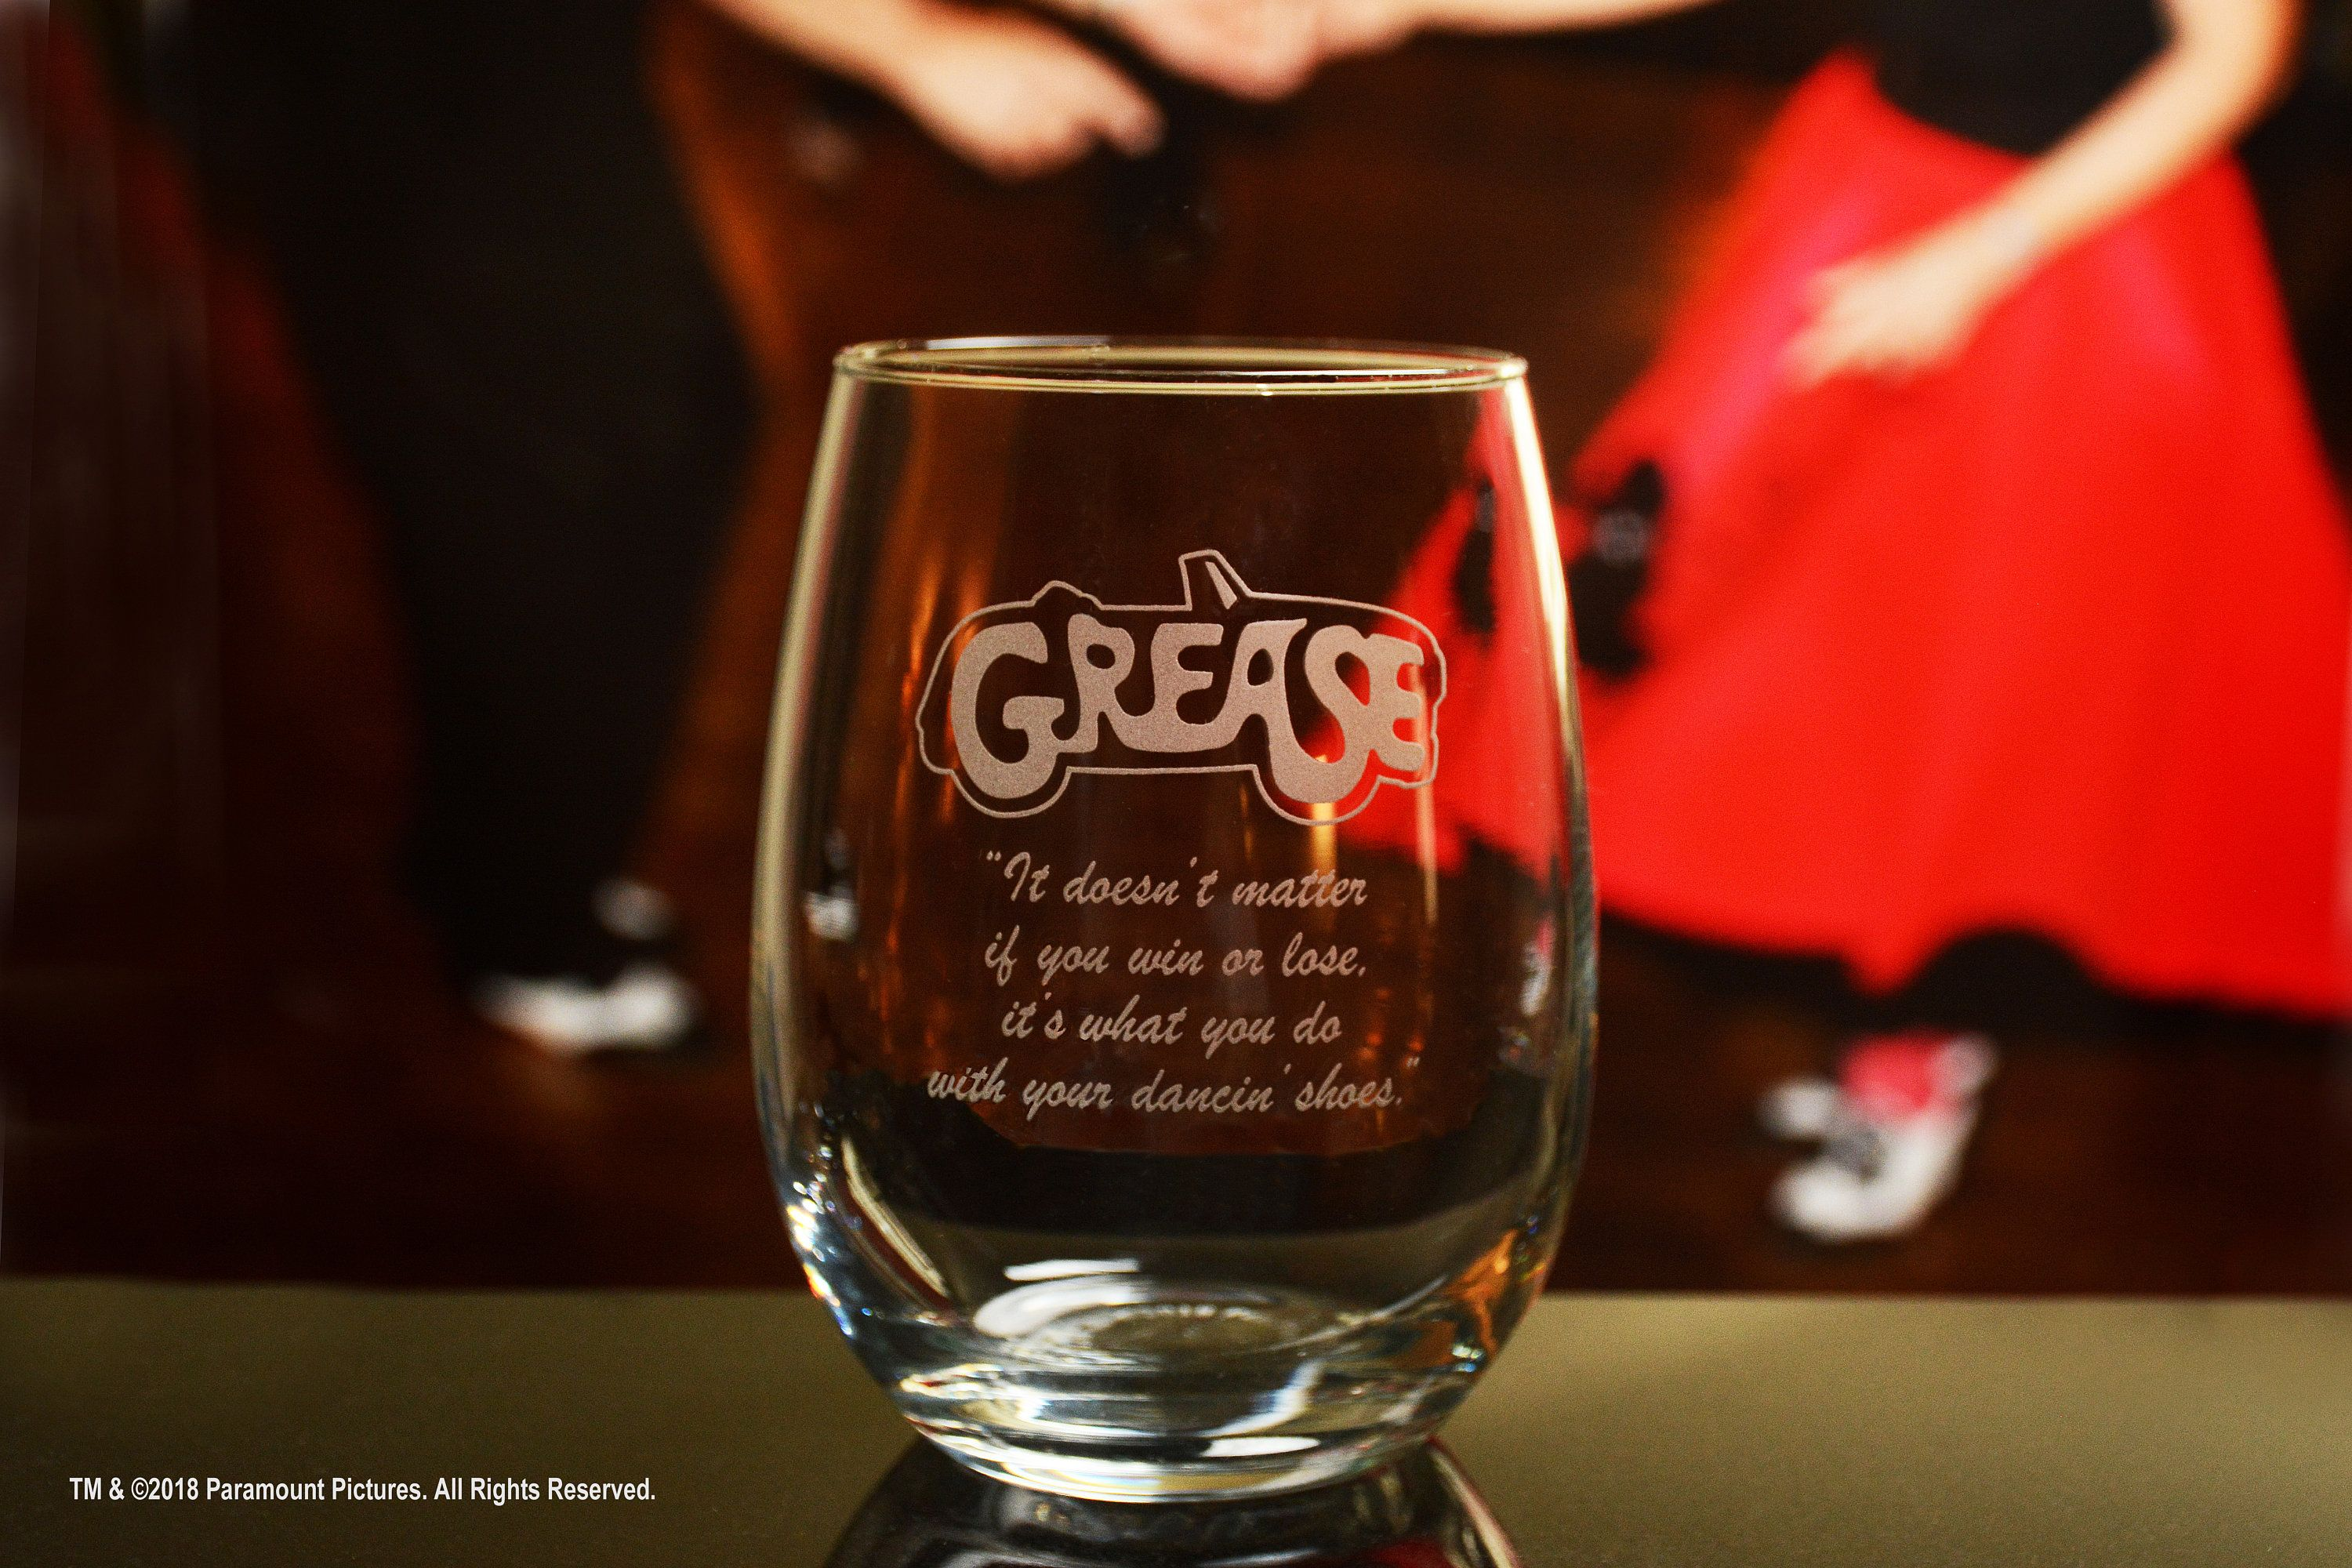 Grease Movie Engraved Logo Stemless Wine Glass With Quote It Etsy Stemless Wine Glass Wine Glass Grease Movie